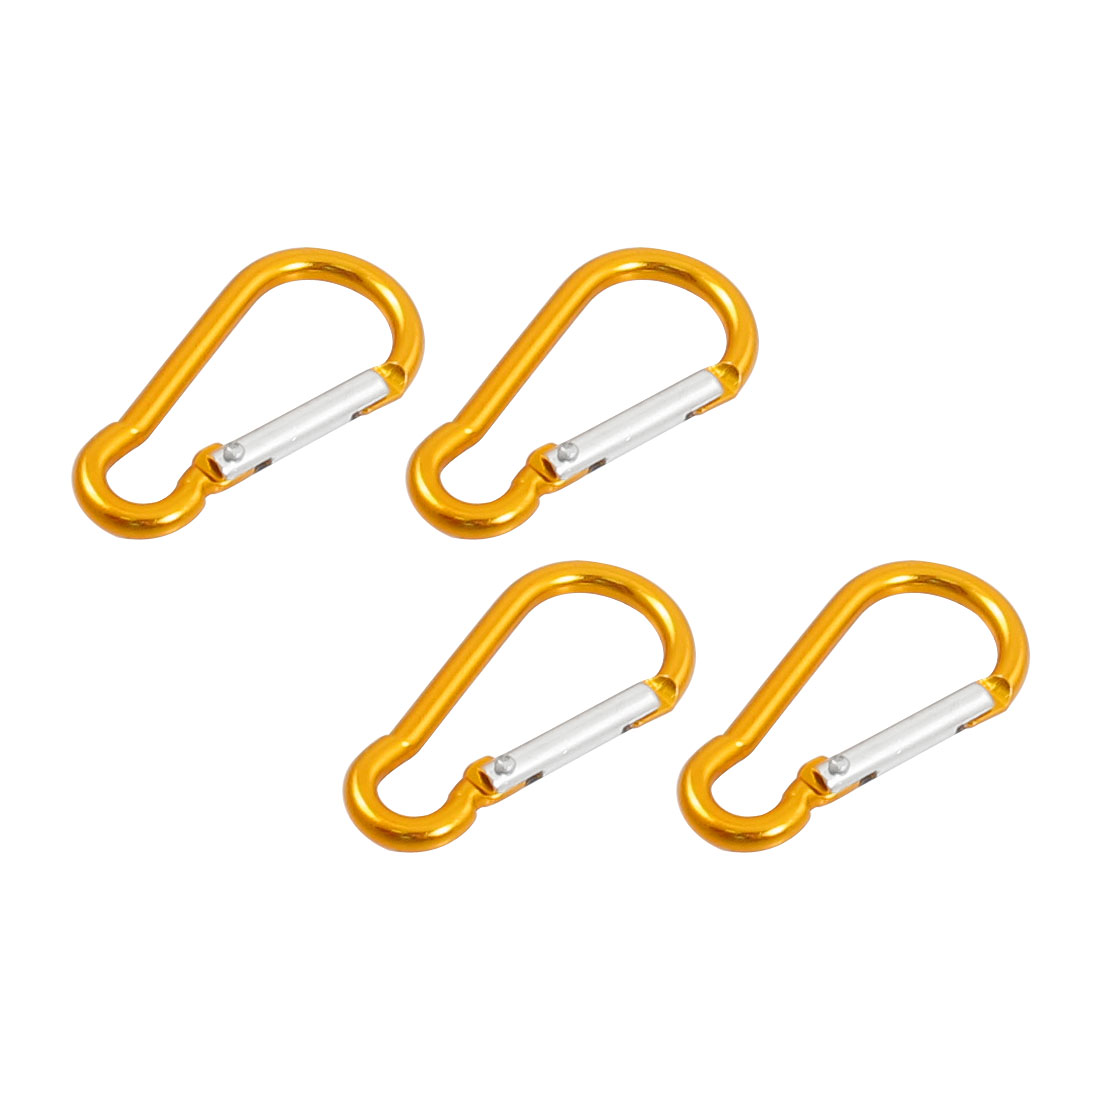 4 Pcs Yellow Aluminum Alloy Gourd Shape Outdoor Carabiner Hook Keychain 5cm